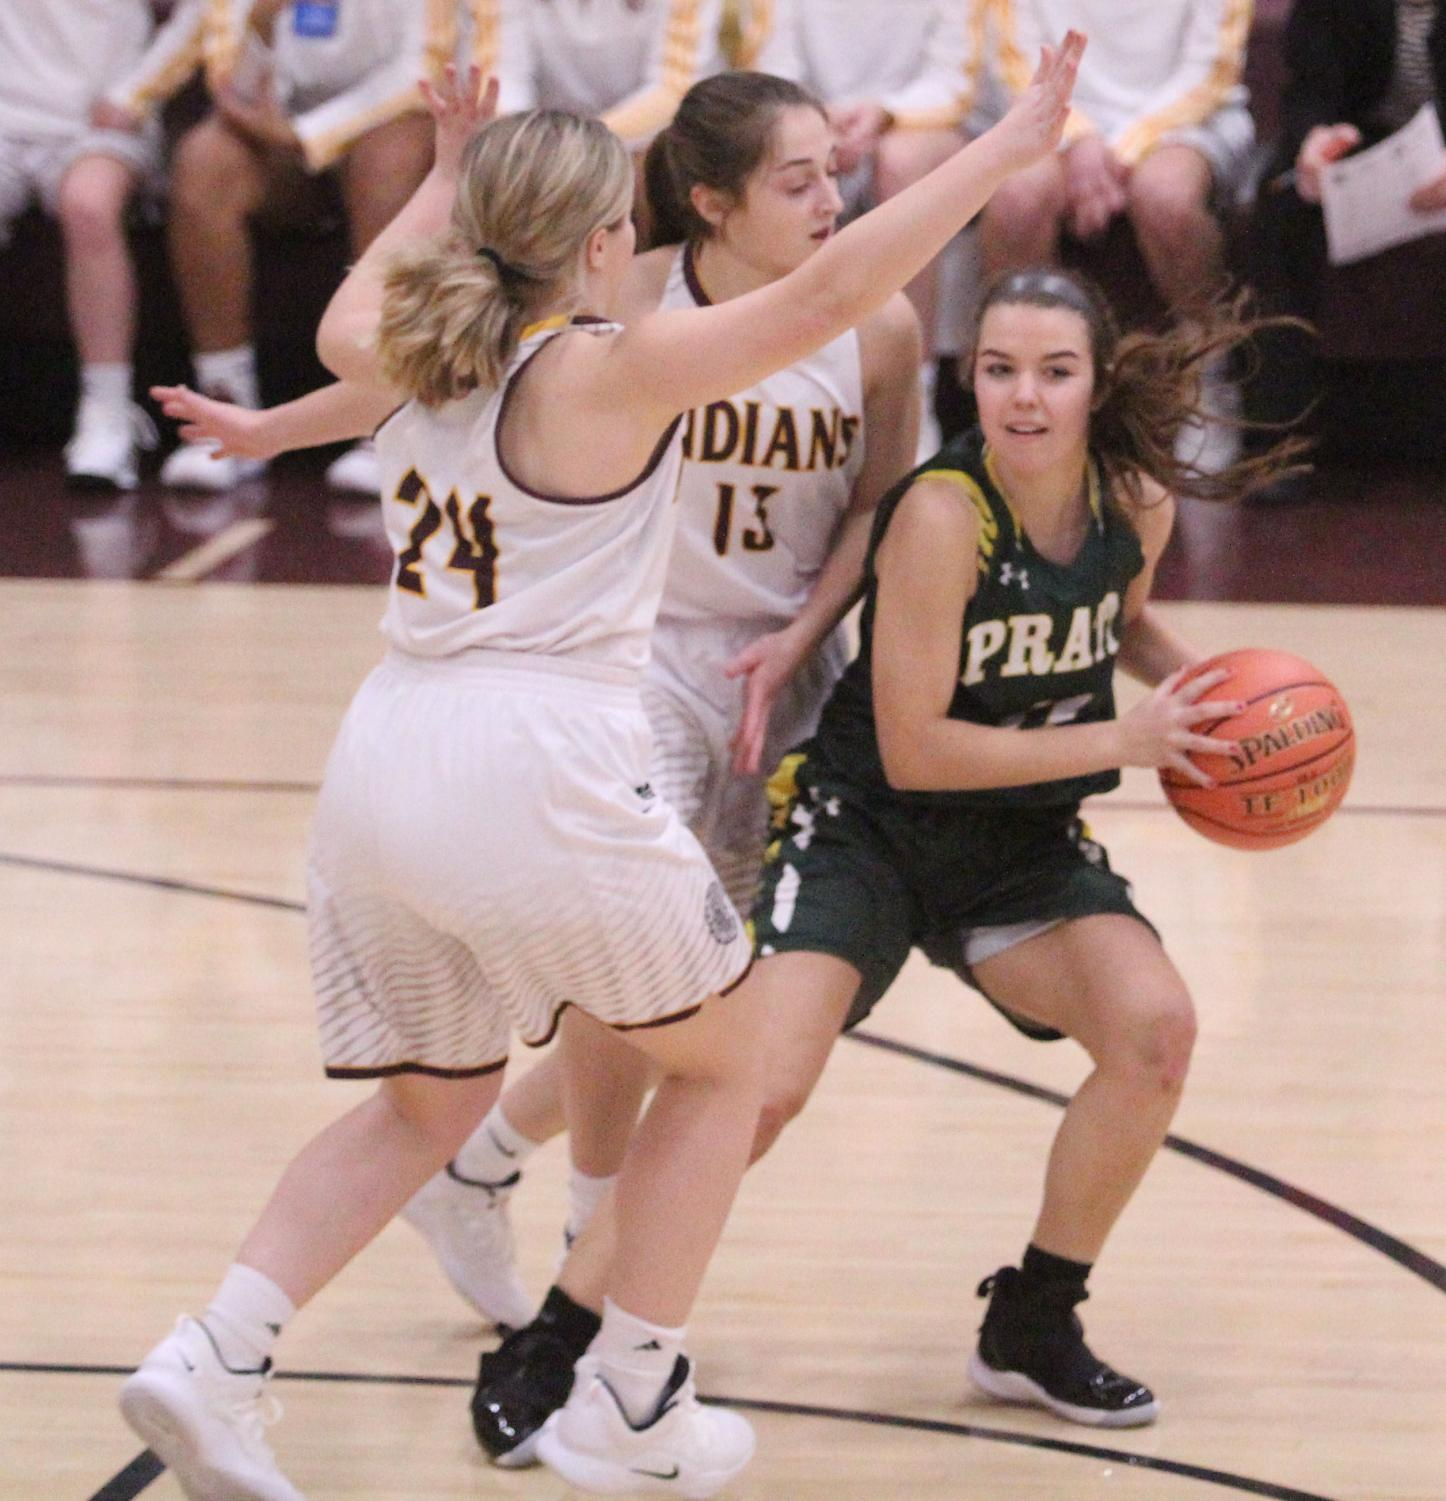 Seniors Kallie Leiker and Mattie Hutchinson guard a Pratt player. The team won 49-40 to improve its record to 3-2.